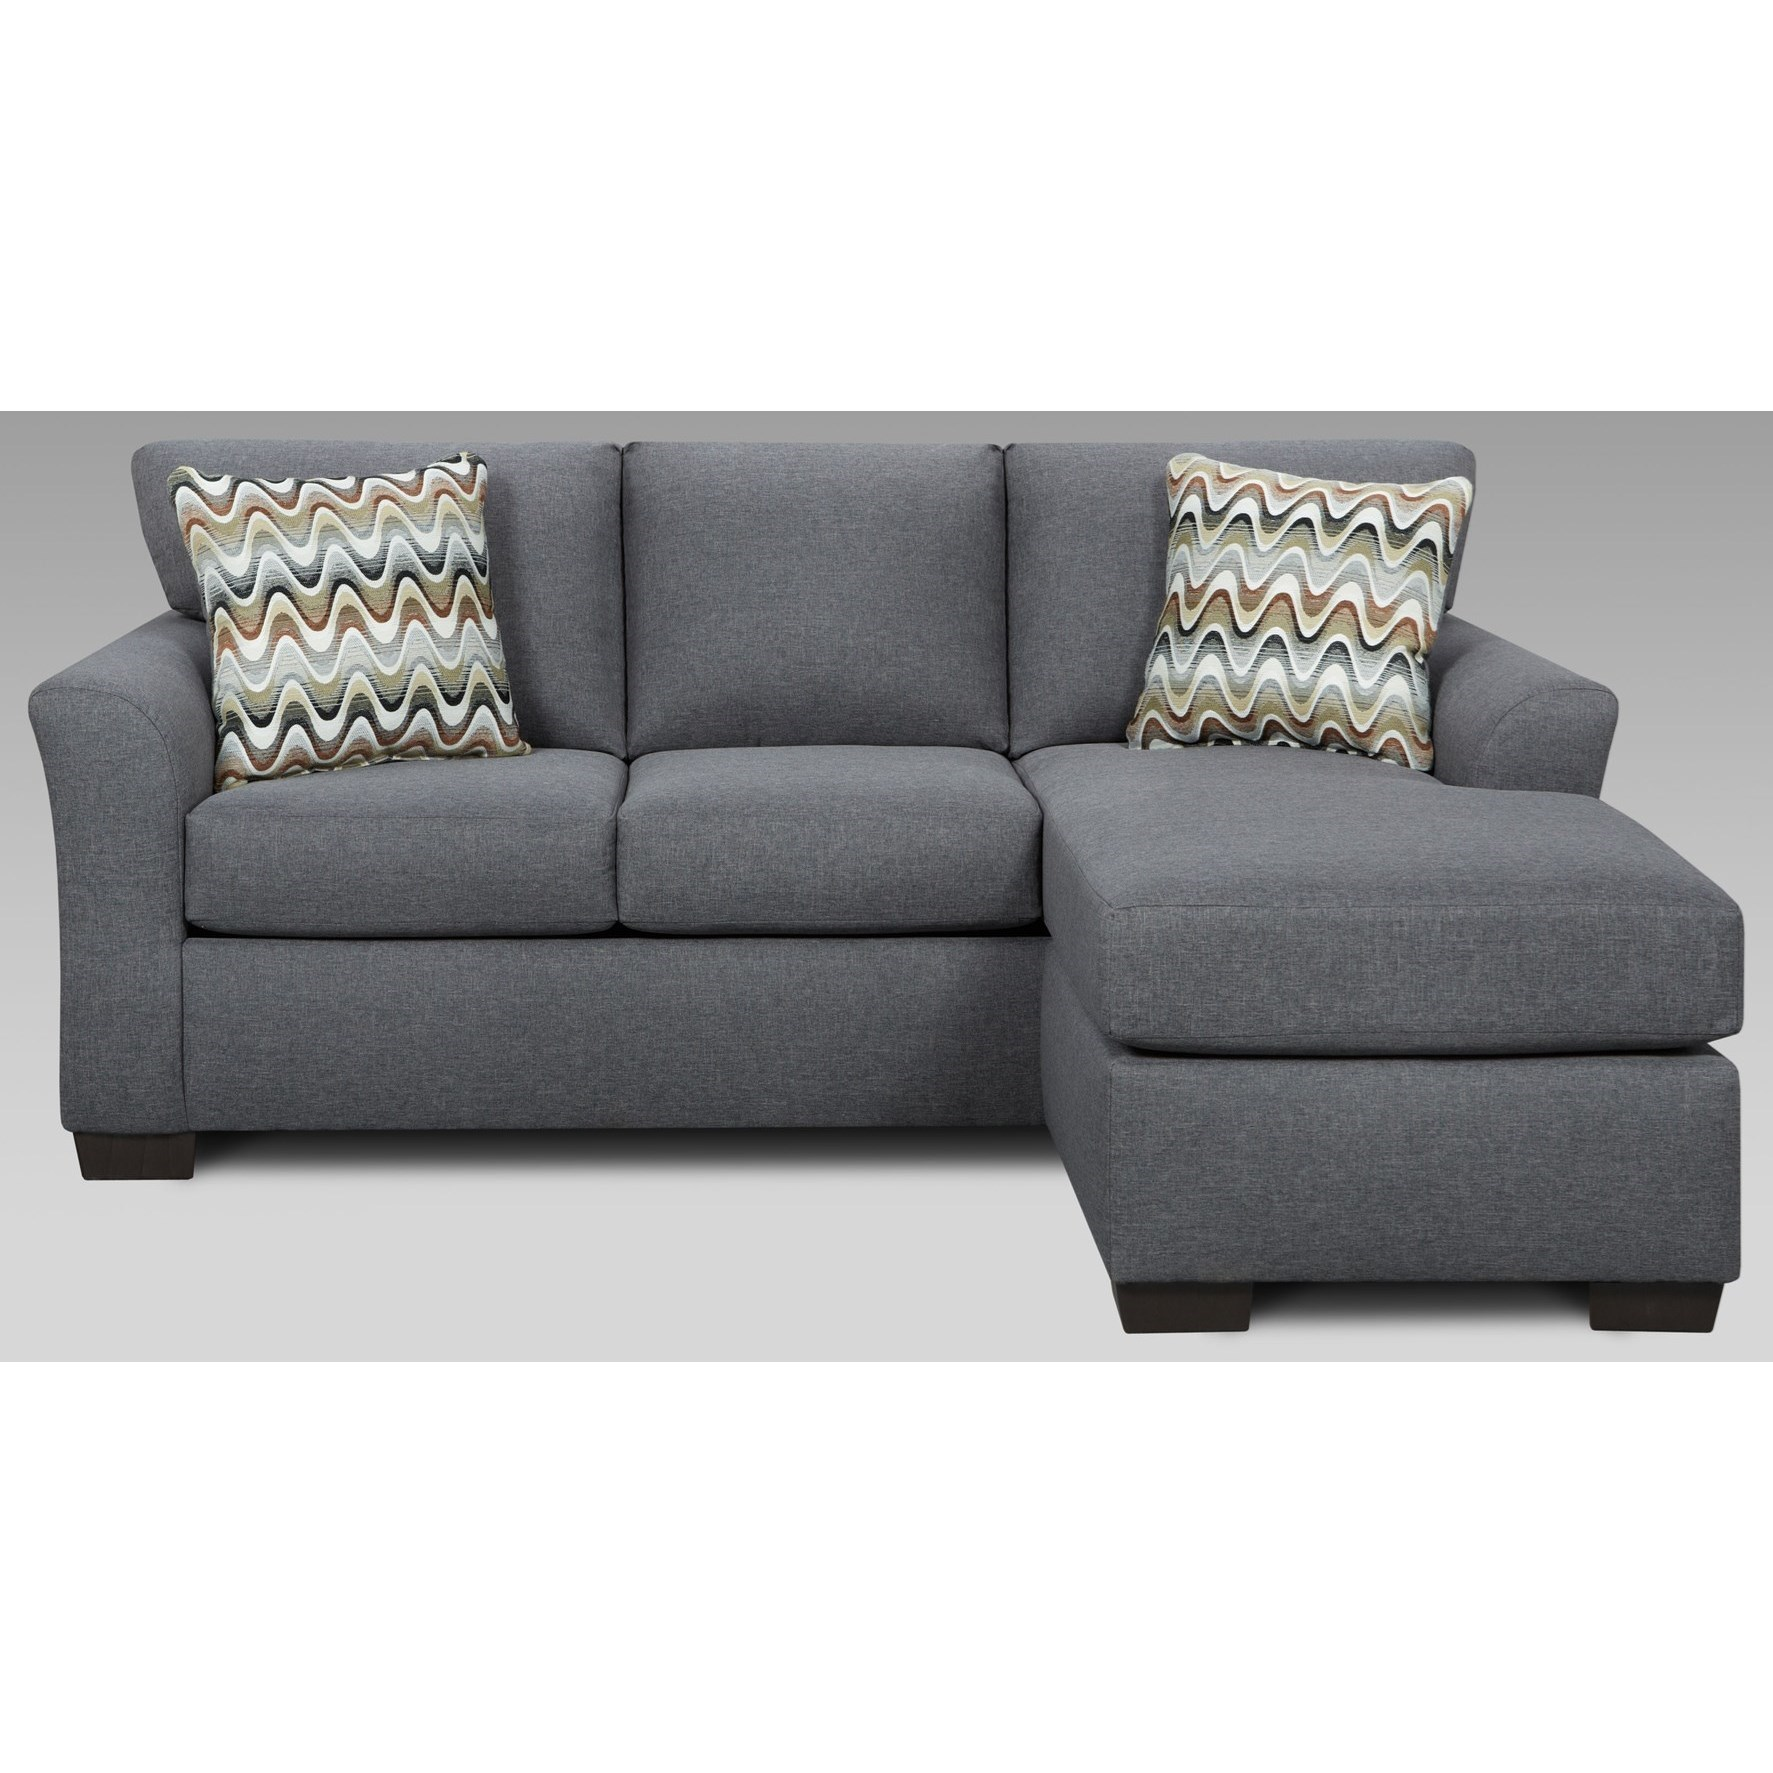 Affordable Furniture Cosmopolitan 3900 Sofa With Chaise   Item Number:  3903 Grey